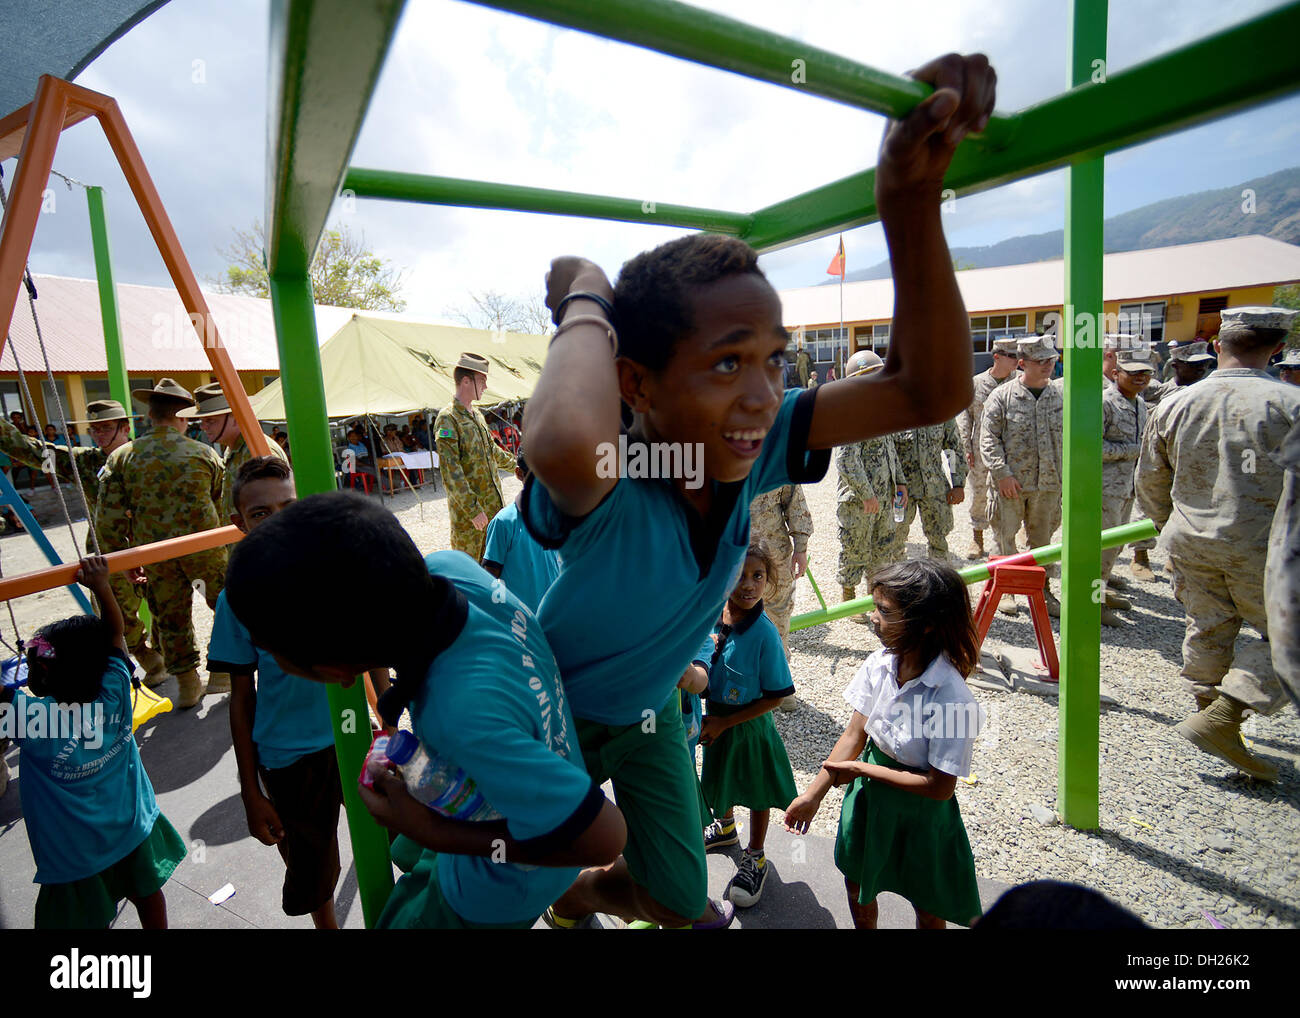 METRINARO, Timor-Leste – (Oct. 28, 2013) A local Timorese child is the first to conquer the monkey bars at his school's Stock Photo